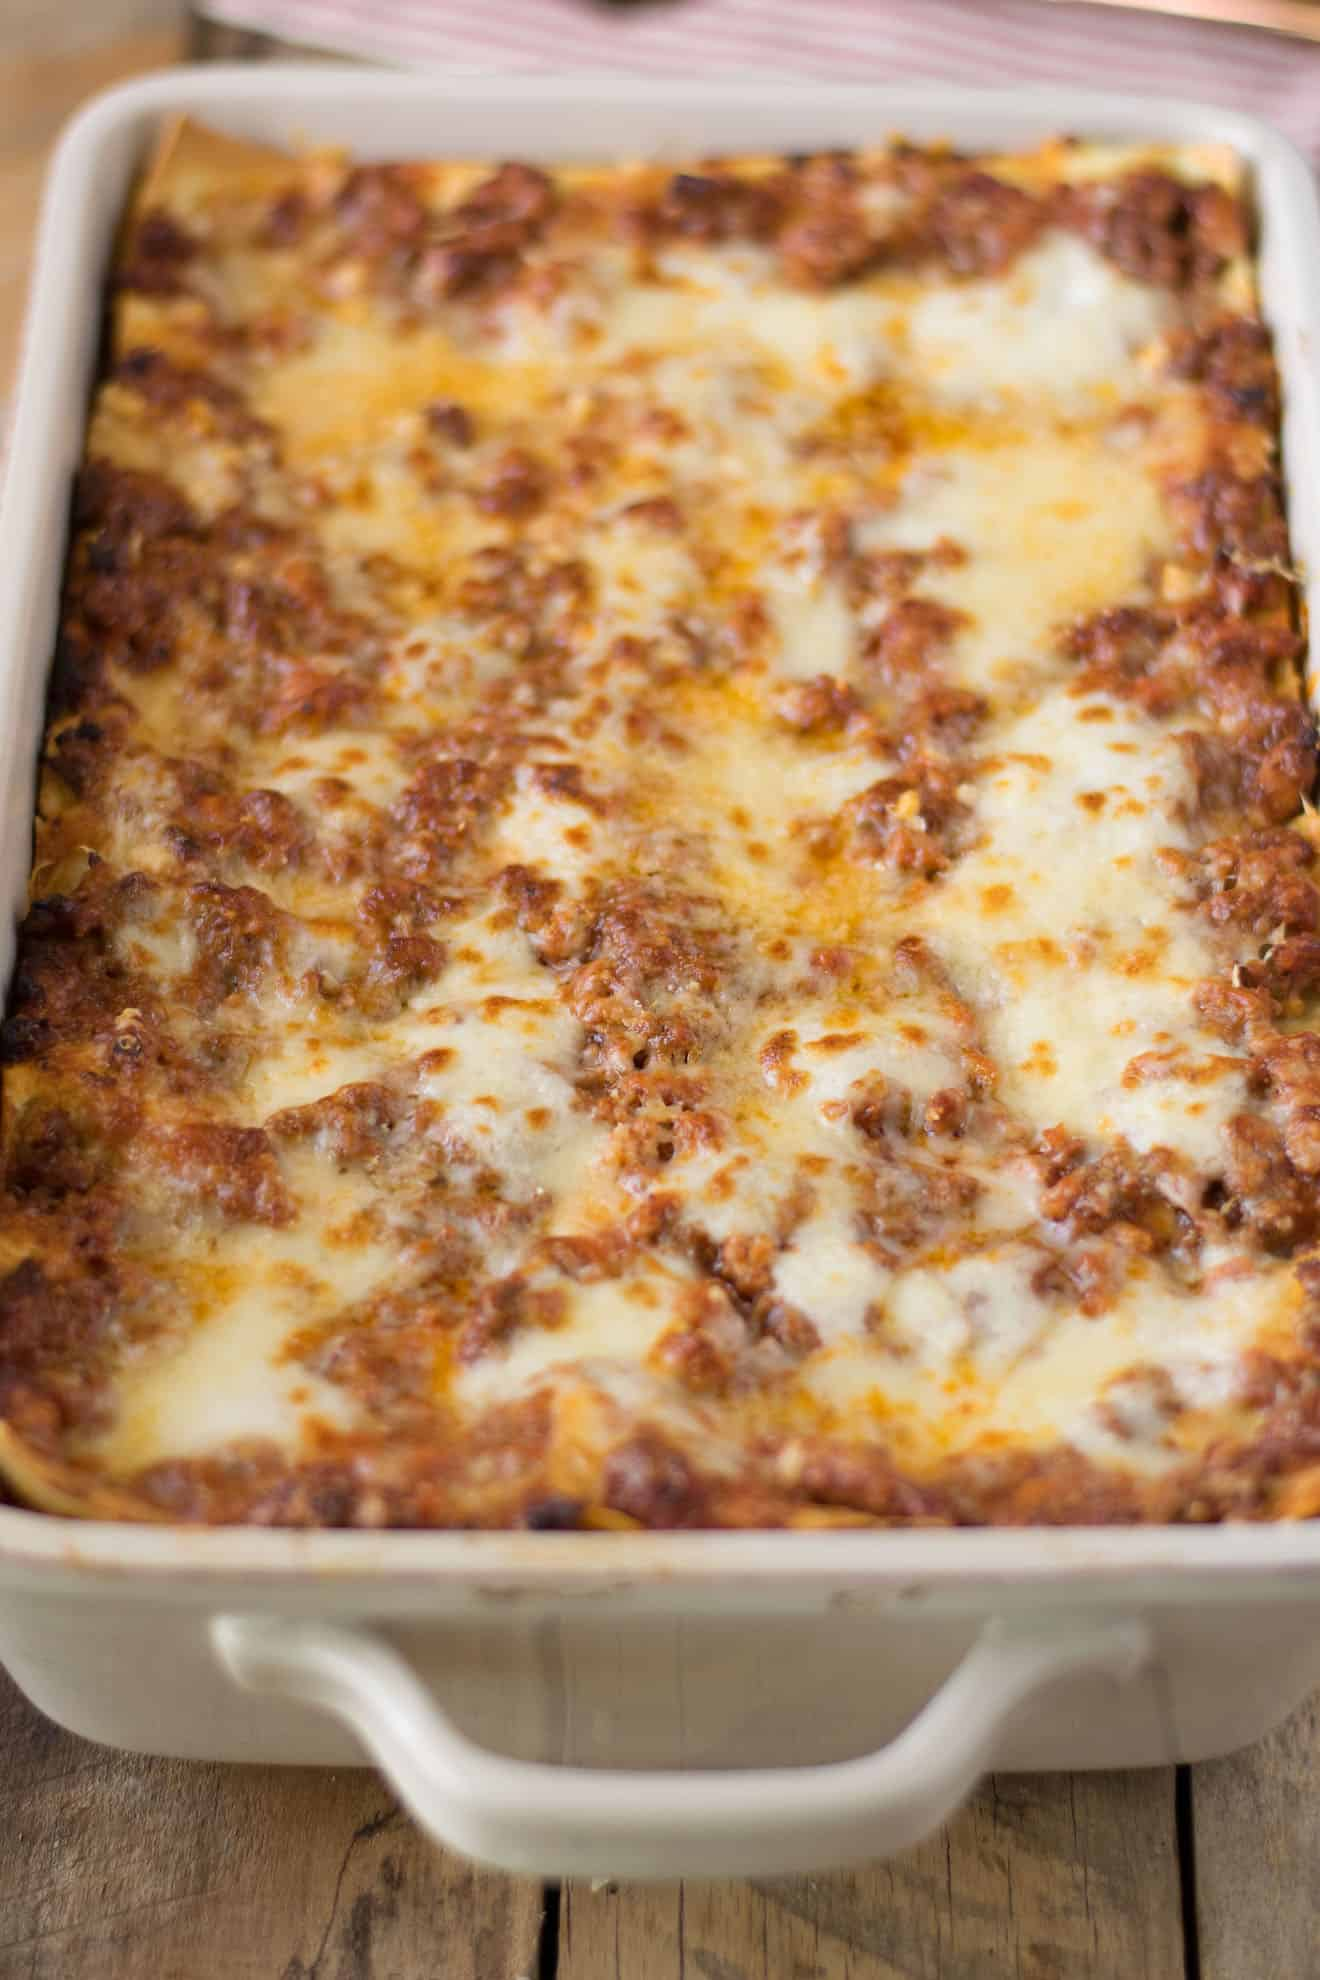 A closeup of a freshly baked Lasagna Bolognese showing the cheesy top